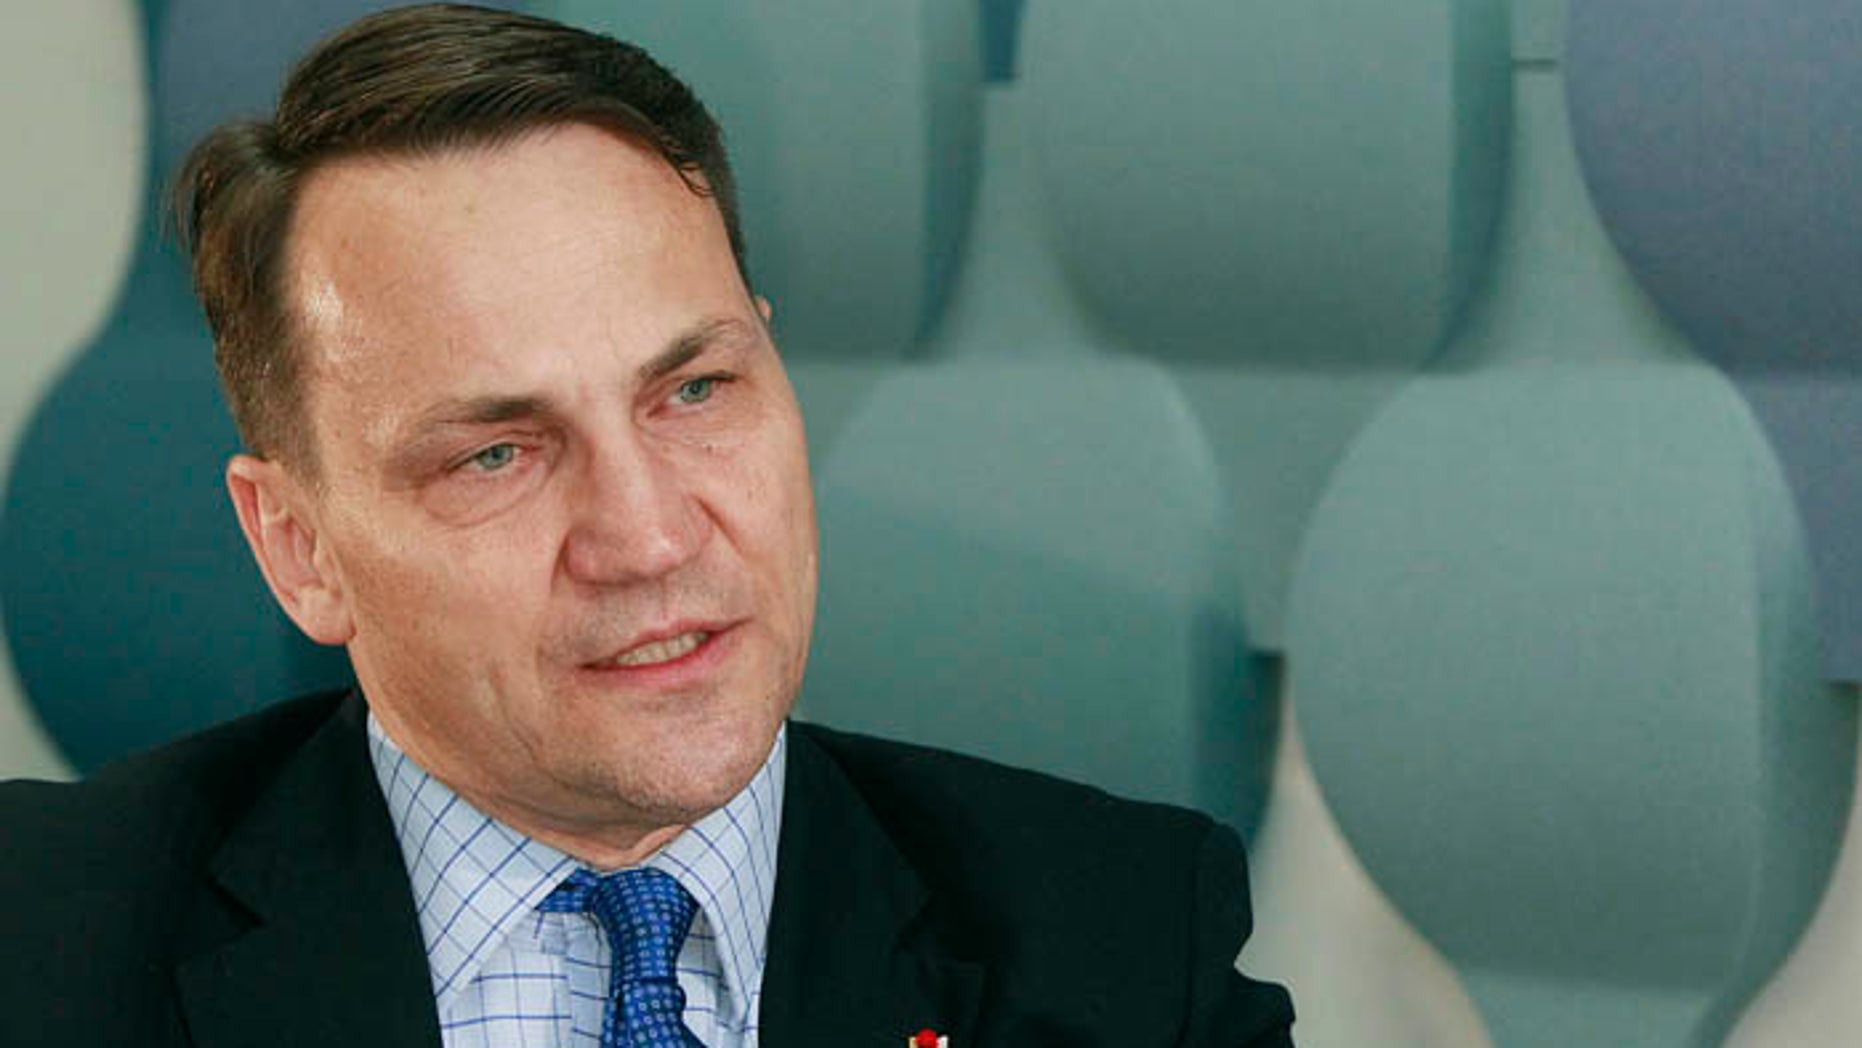 FILE In this May 16, 2016,file photo Radek Sikorski, a former Polish foreign ministers, speaks to The Associated Press in Warsaw, Poland, on Monday May 16, 2016. Sikorski was among several former Polish leaders whose conversations were illegally recorded in Warsaw restaurant in 2003 and 2004, prompting a scandal that cost him and others their jobs. In Warsaw, Poland, Thursday, Dec. 29, 2016  a Polish court sentenced a Polish businessman to 2 1/2 years of prison for planning the wiretapping. Two waiters also got lesser sentences in the case and one waiter was fined. (AP Photo/Czarek Sokolowski)